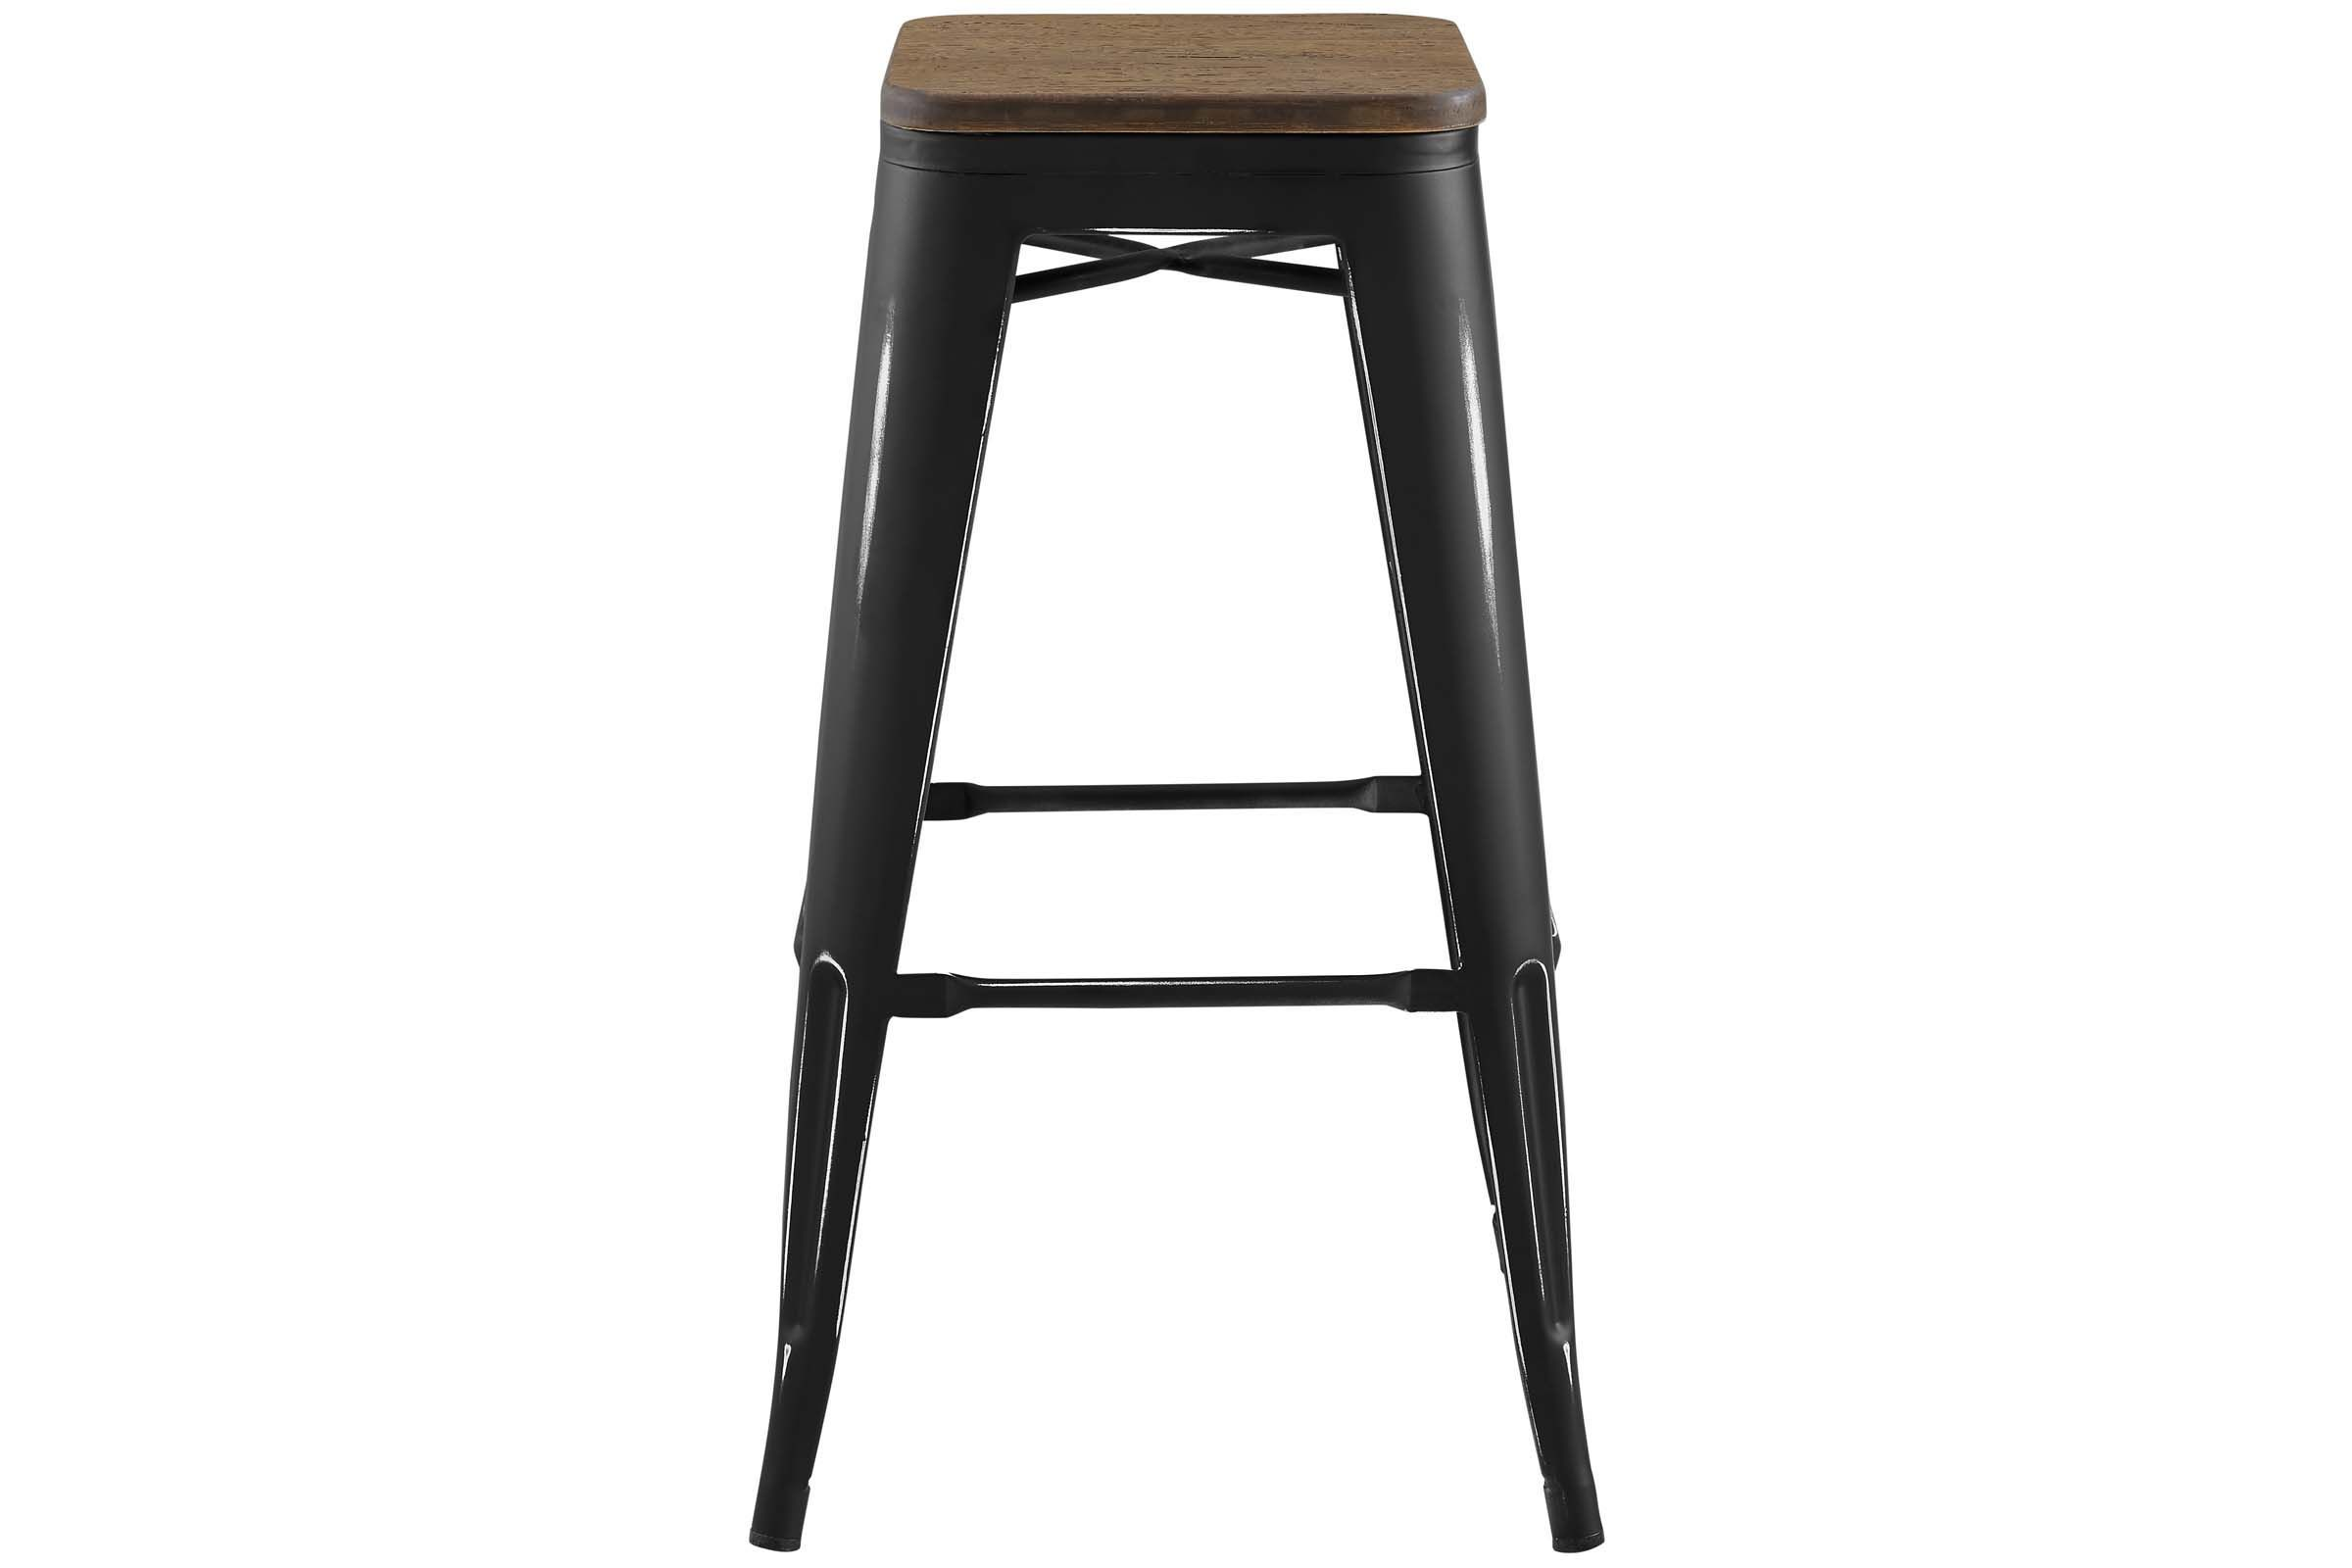 Promenade Backless Bar Stool In Black By Modway In 2020 Backless